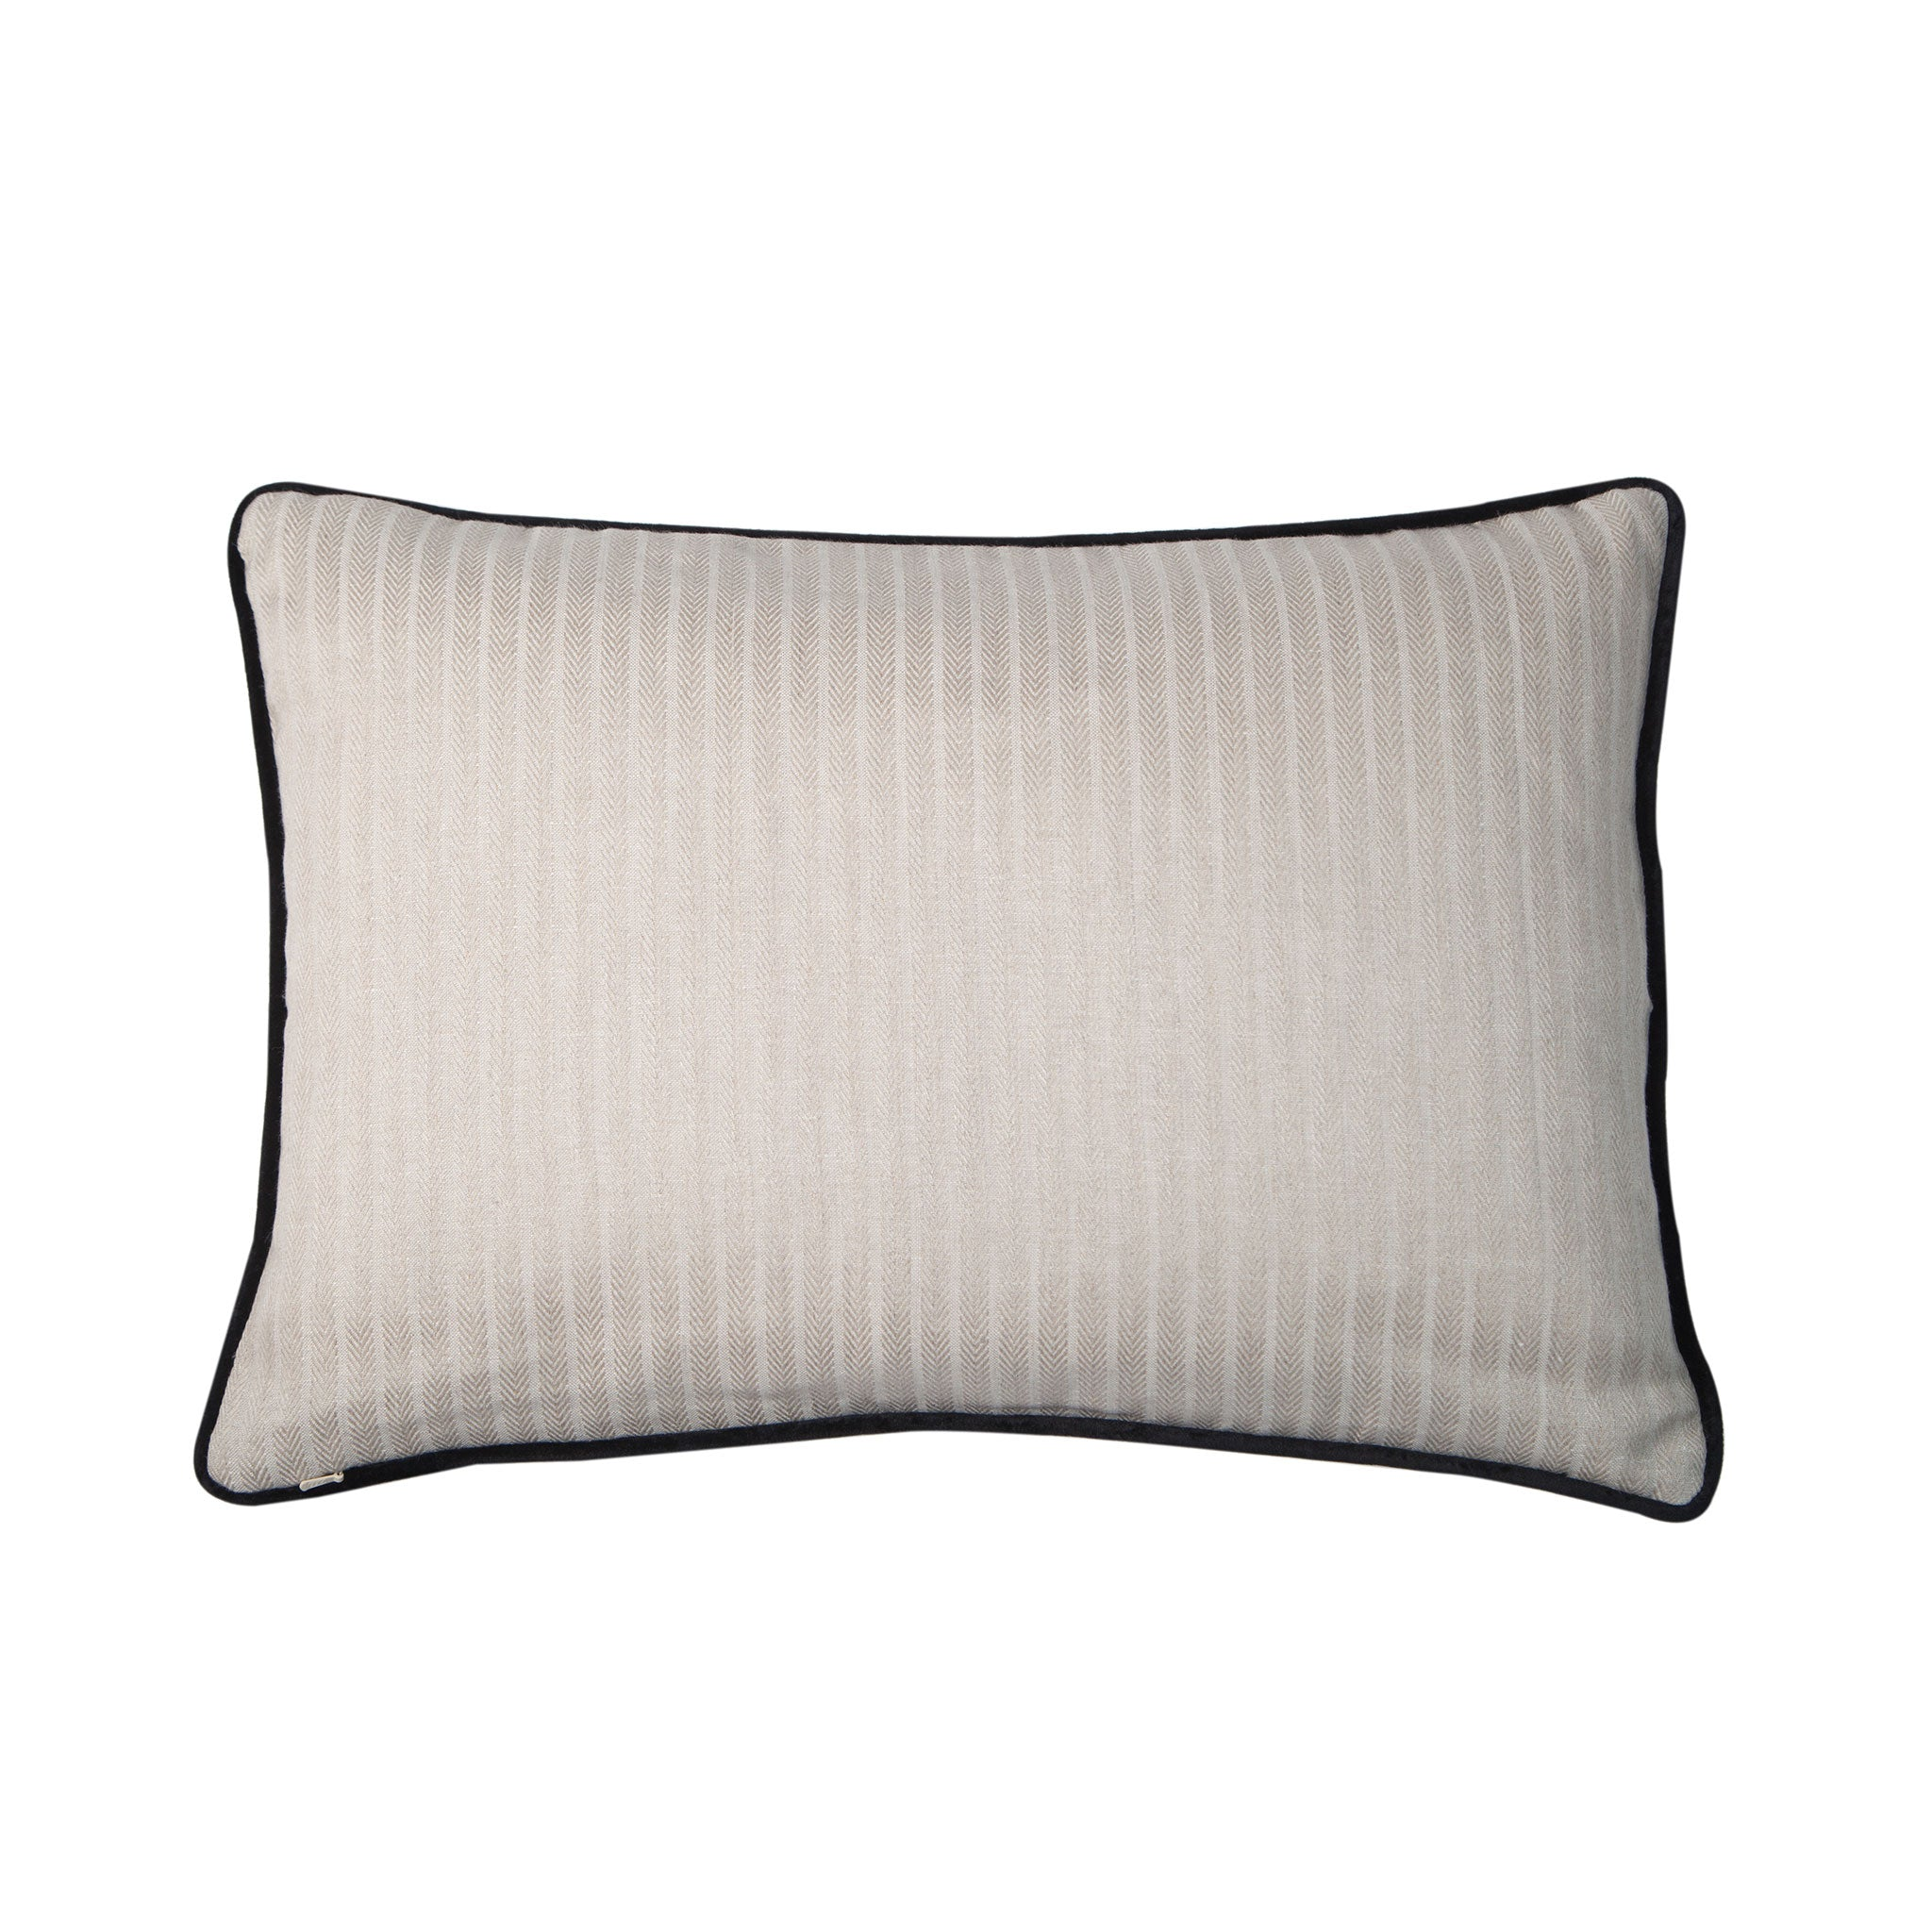 Cream Linen Rectangular Cushion with Black Velvet Piping